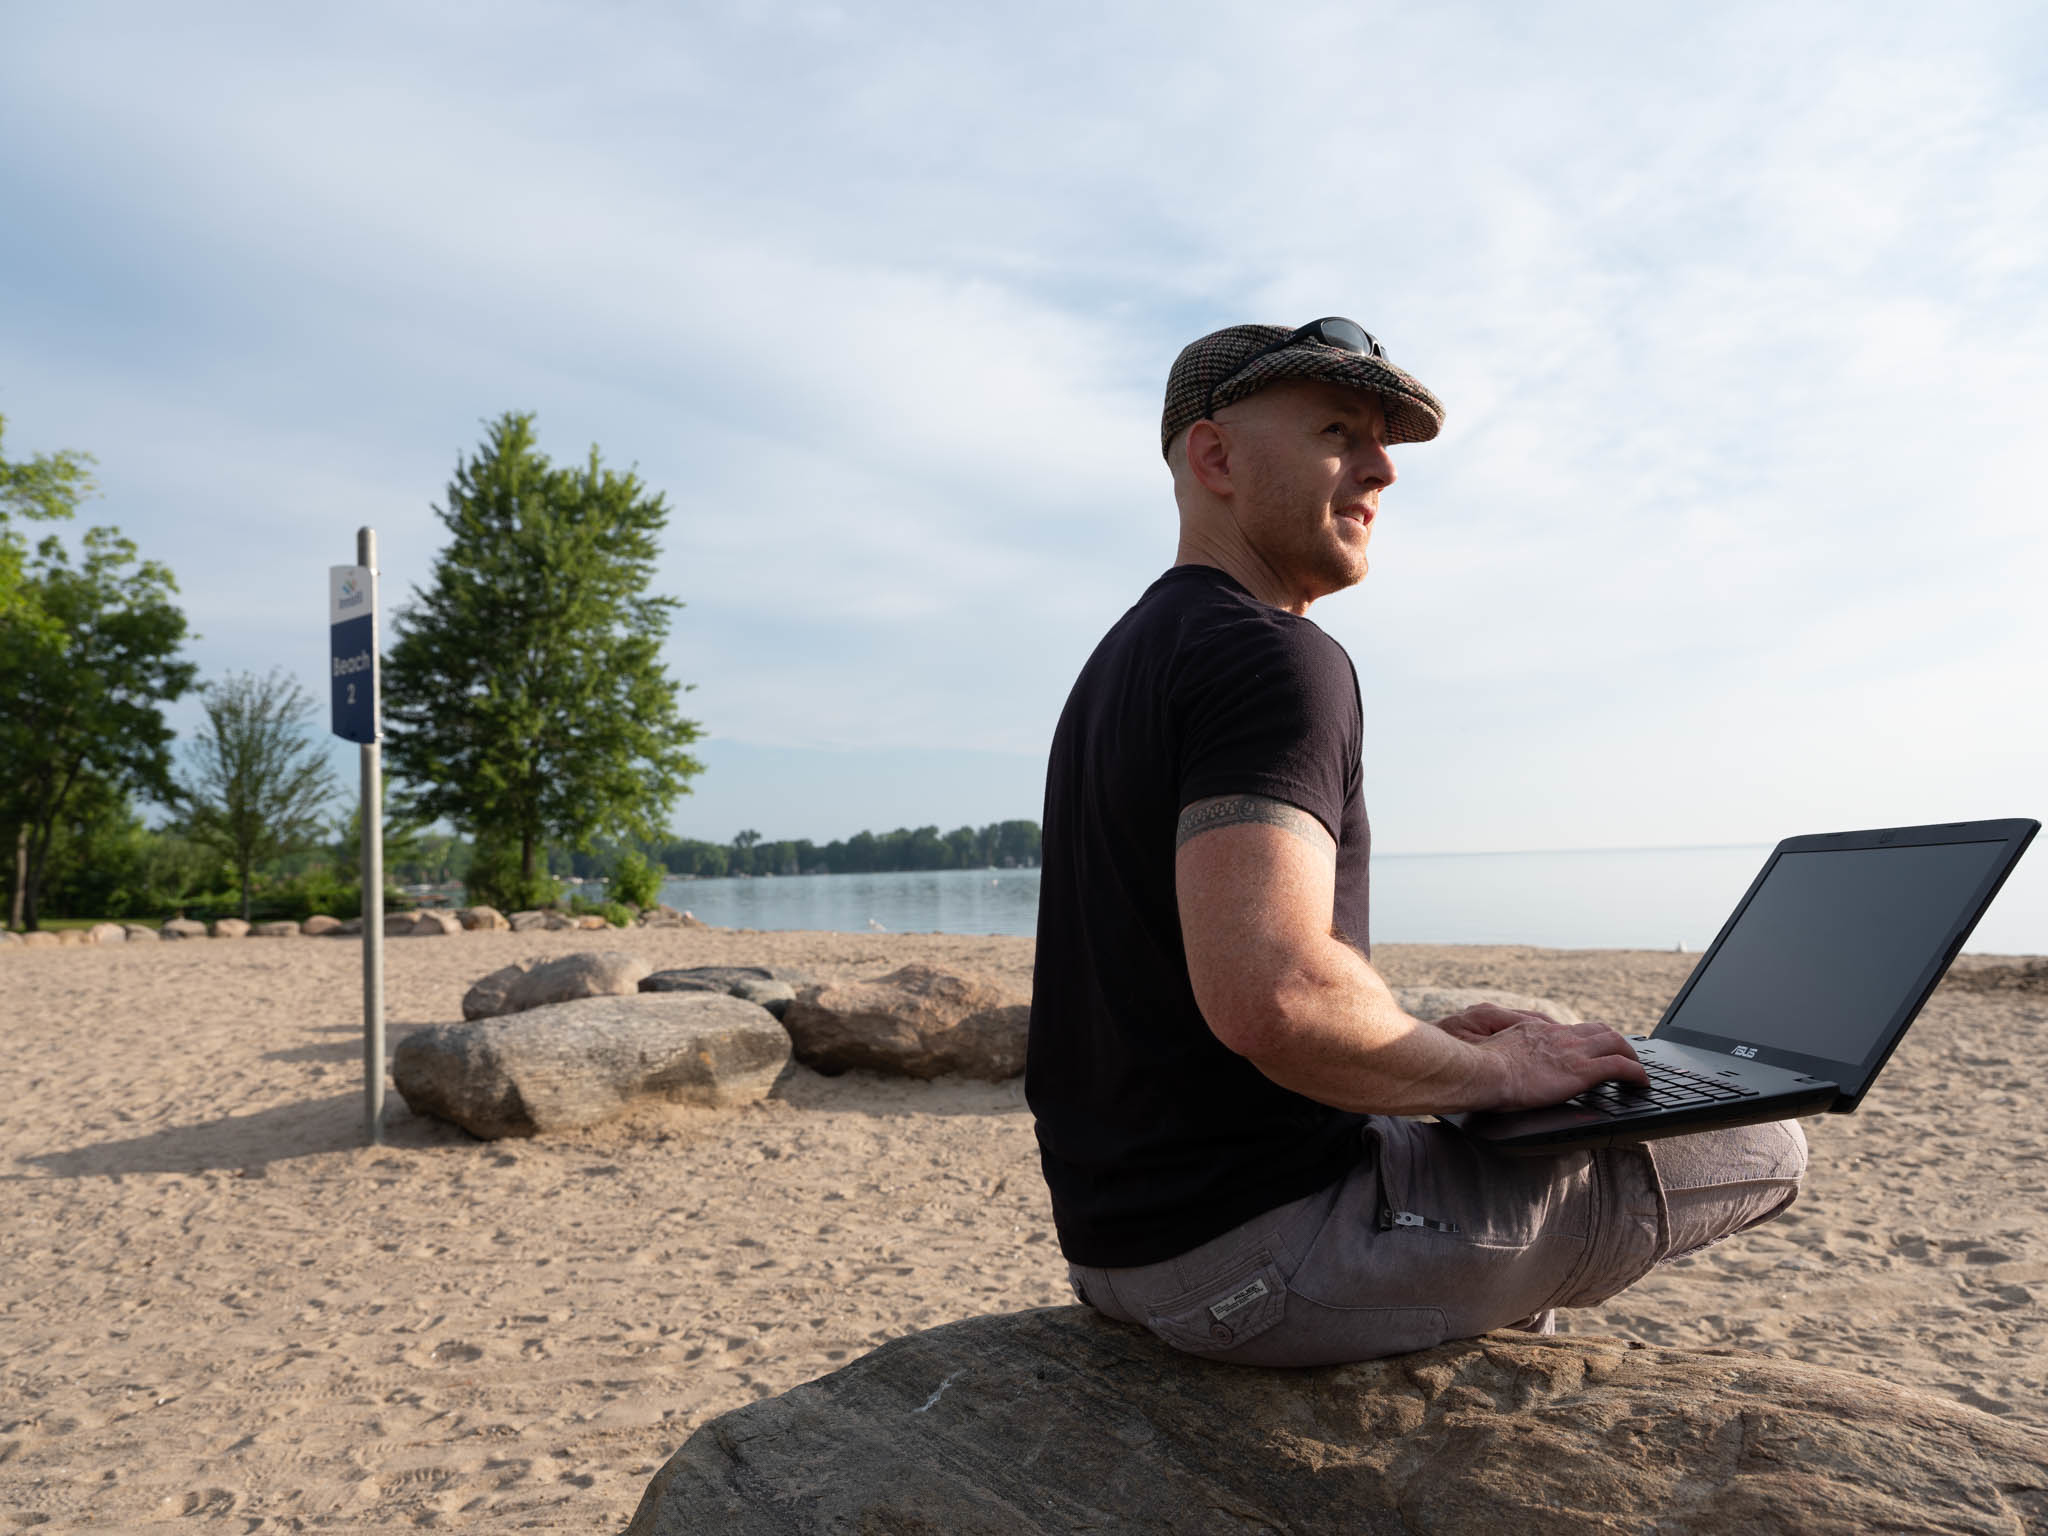 Work on the beach, a dream for any entrepreneur!